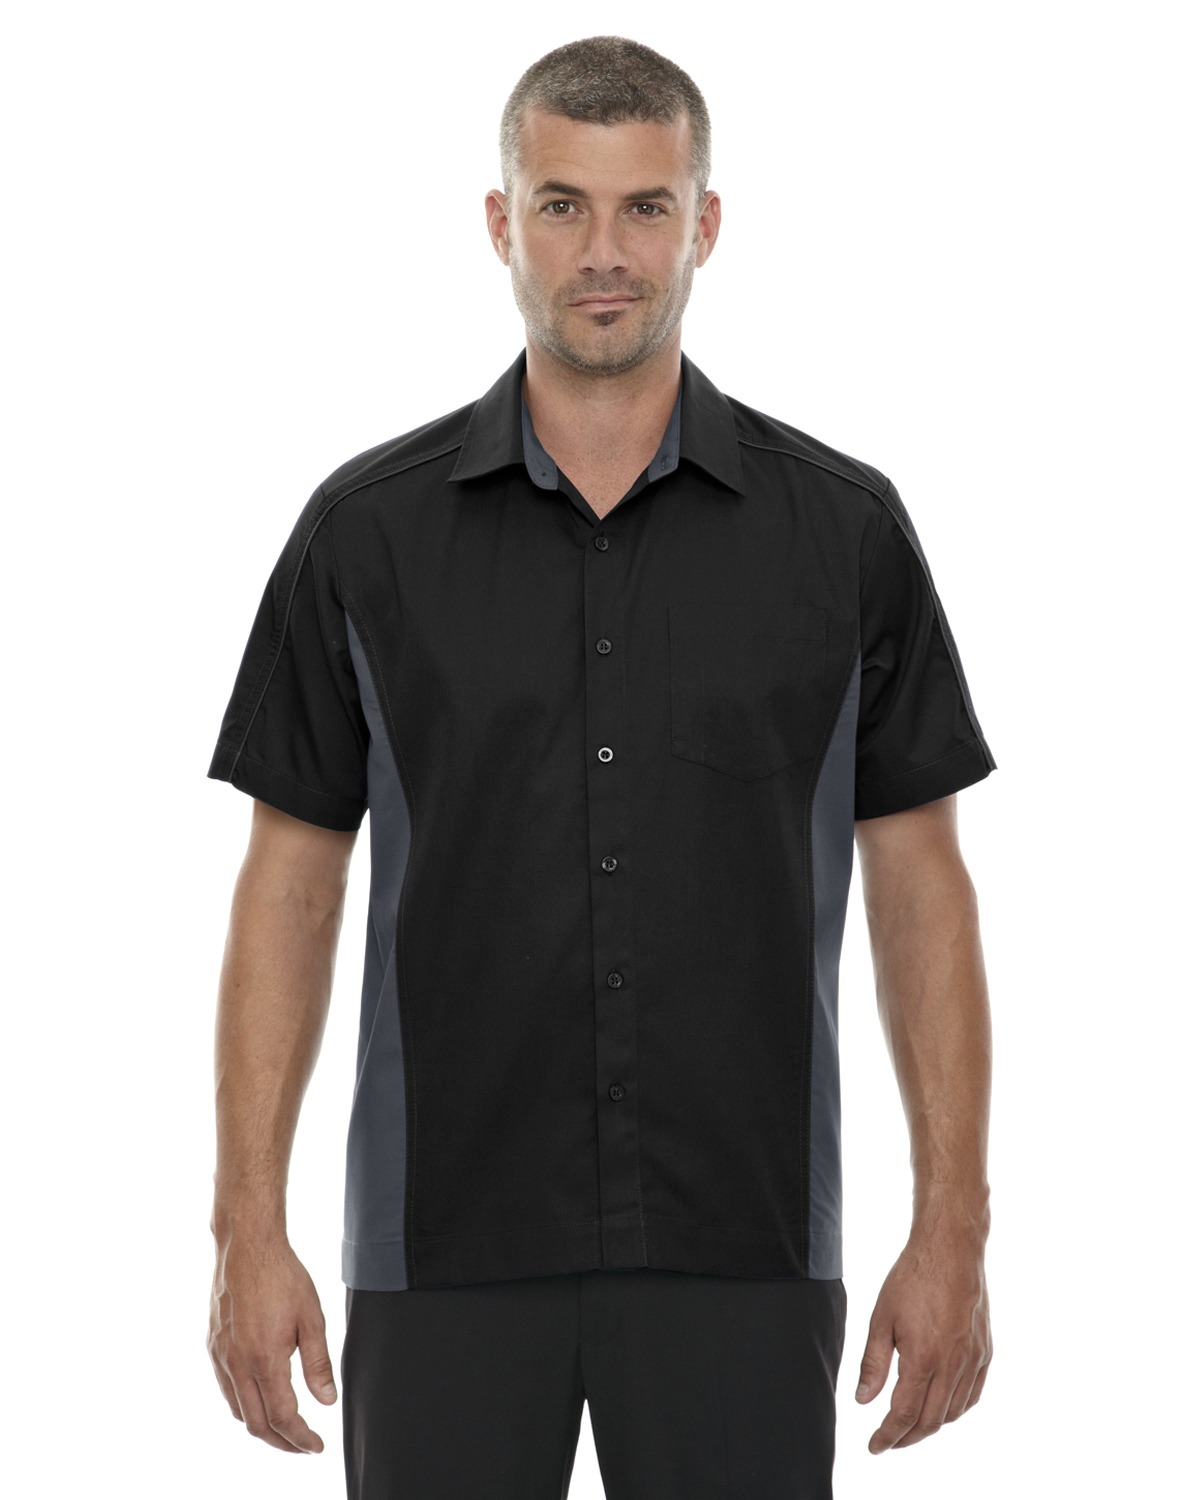 Buy big and tall men's clothes by the case or buy men's big and tall clothing in bulk, all at low bulk closeout prices. Fashionable apparel and clothing at discount wholesale and closeout prices in our big and tall men's online clothing store.